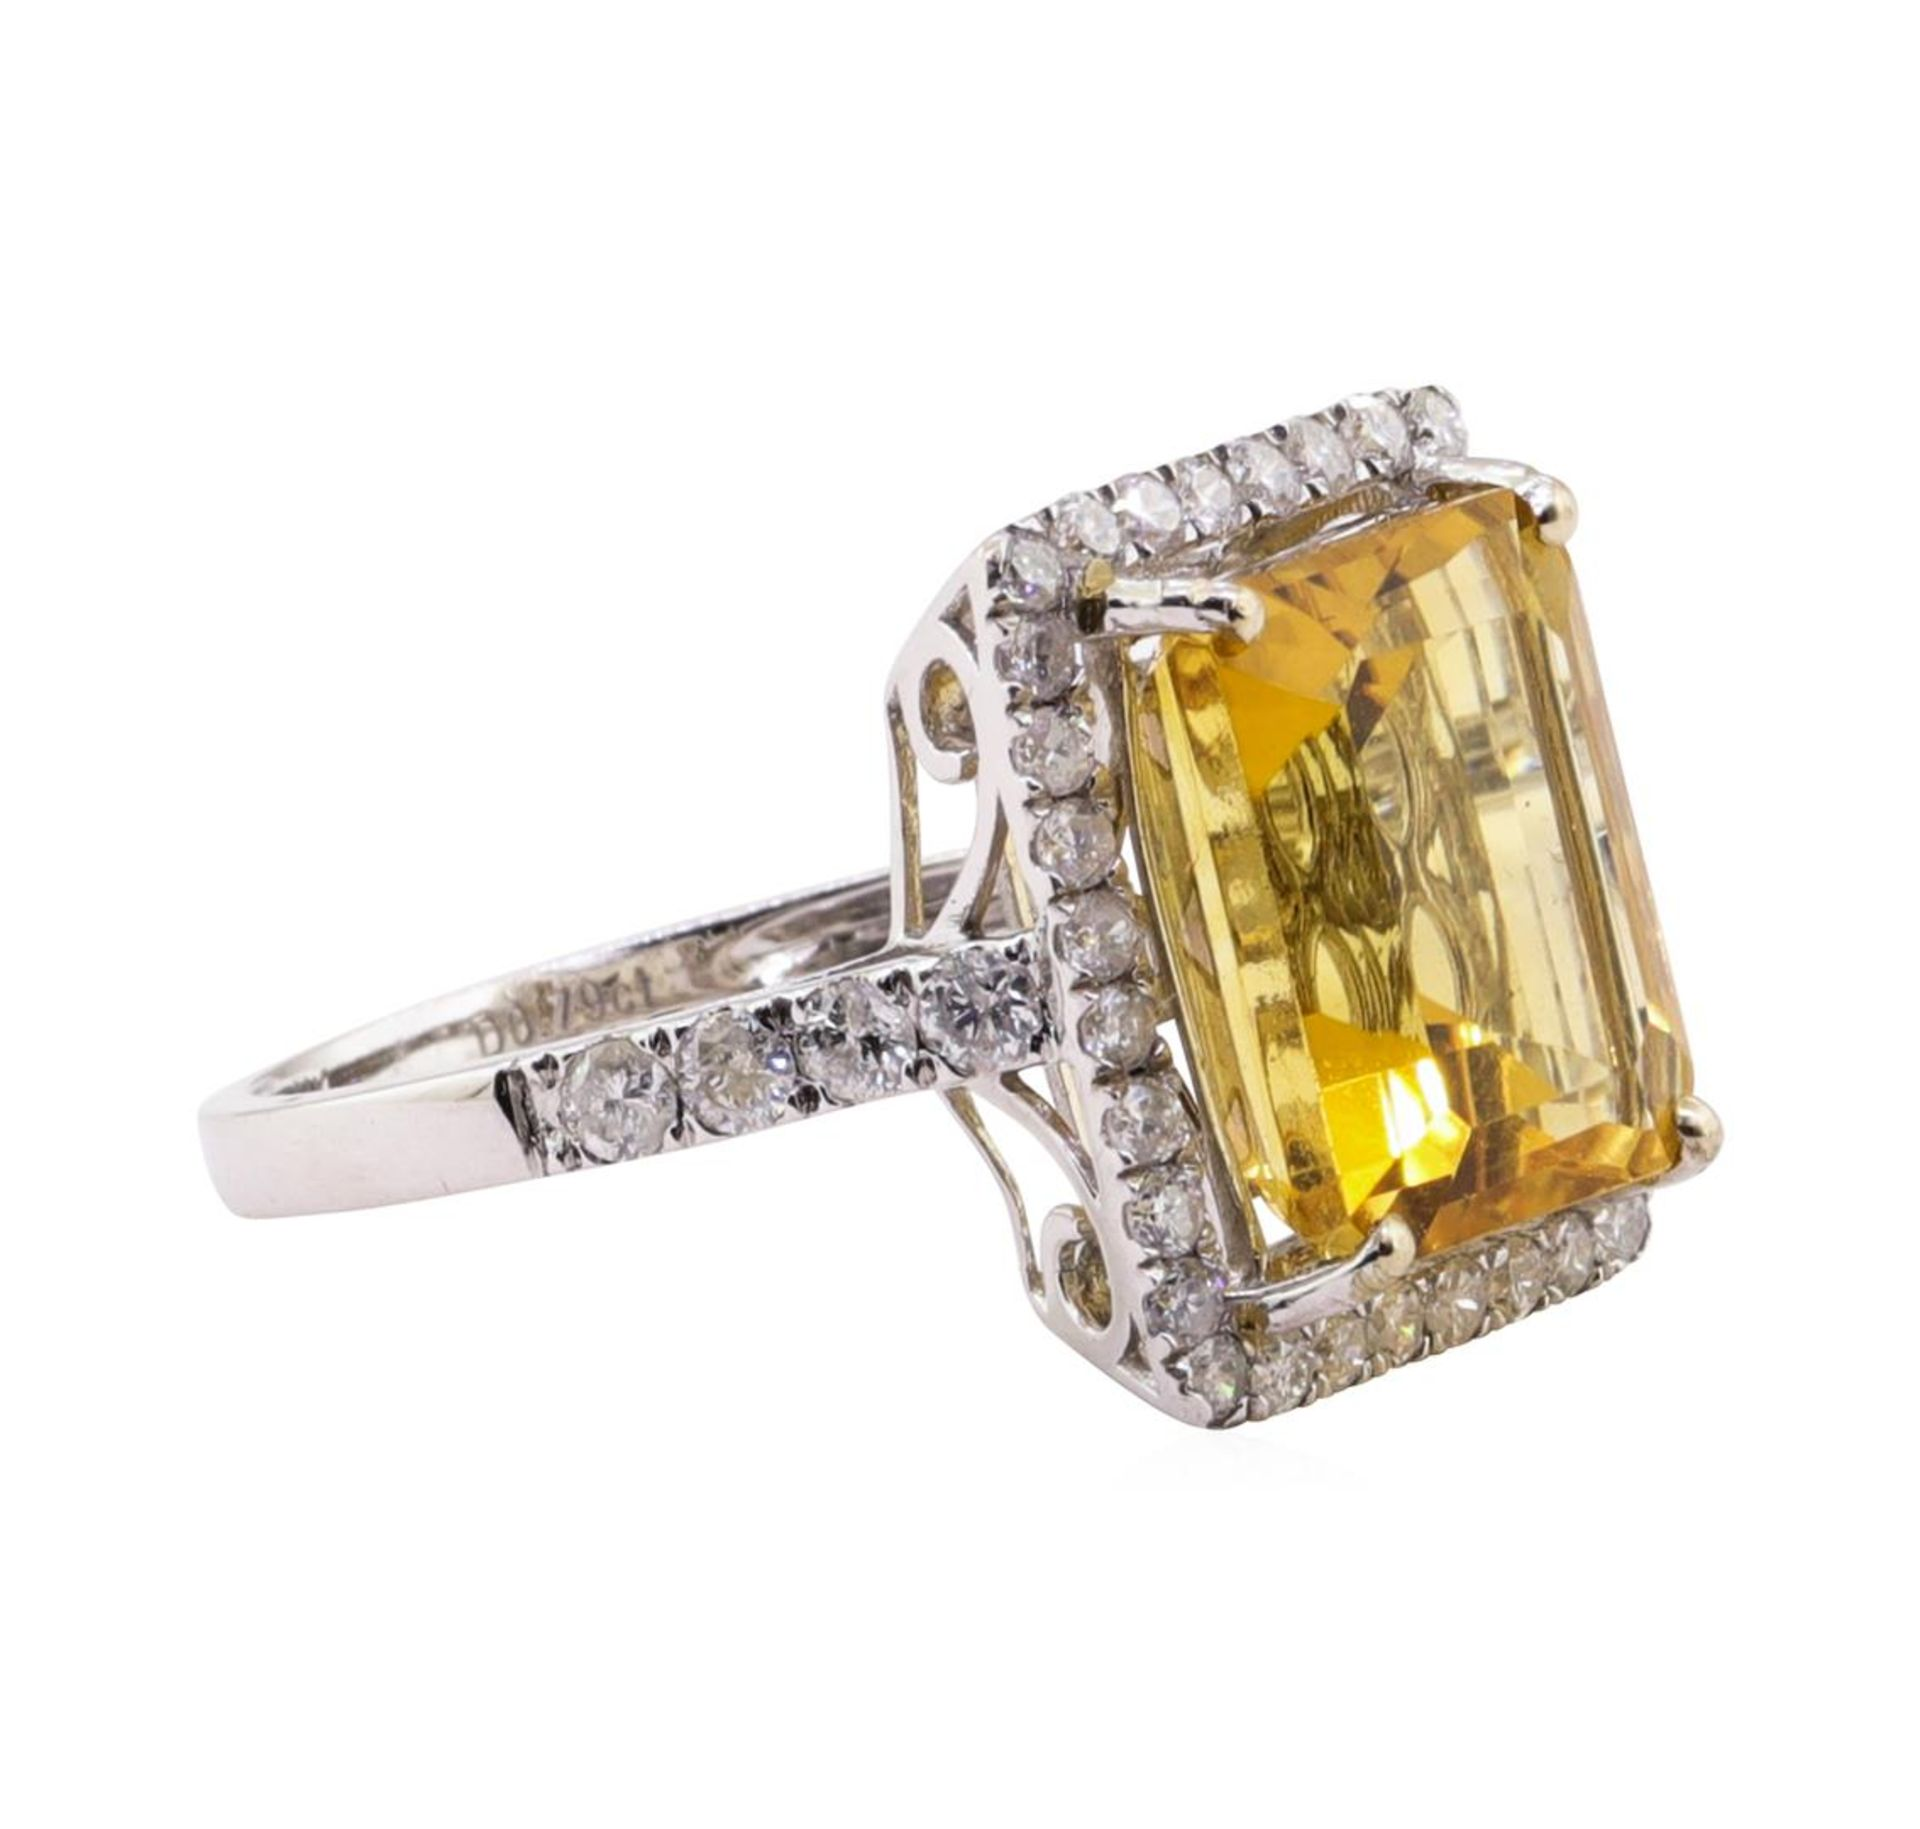 6.25ct Citrine and Diamond Ring - 14KT White Gold - Image 2 of 5